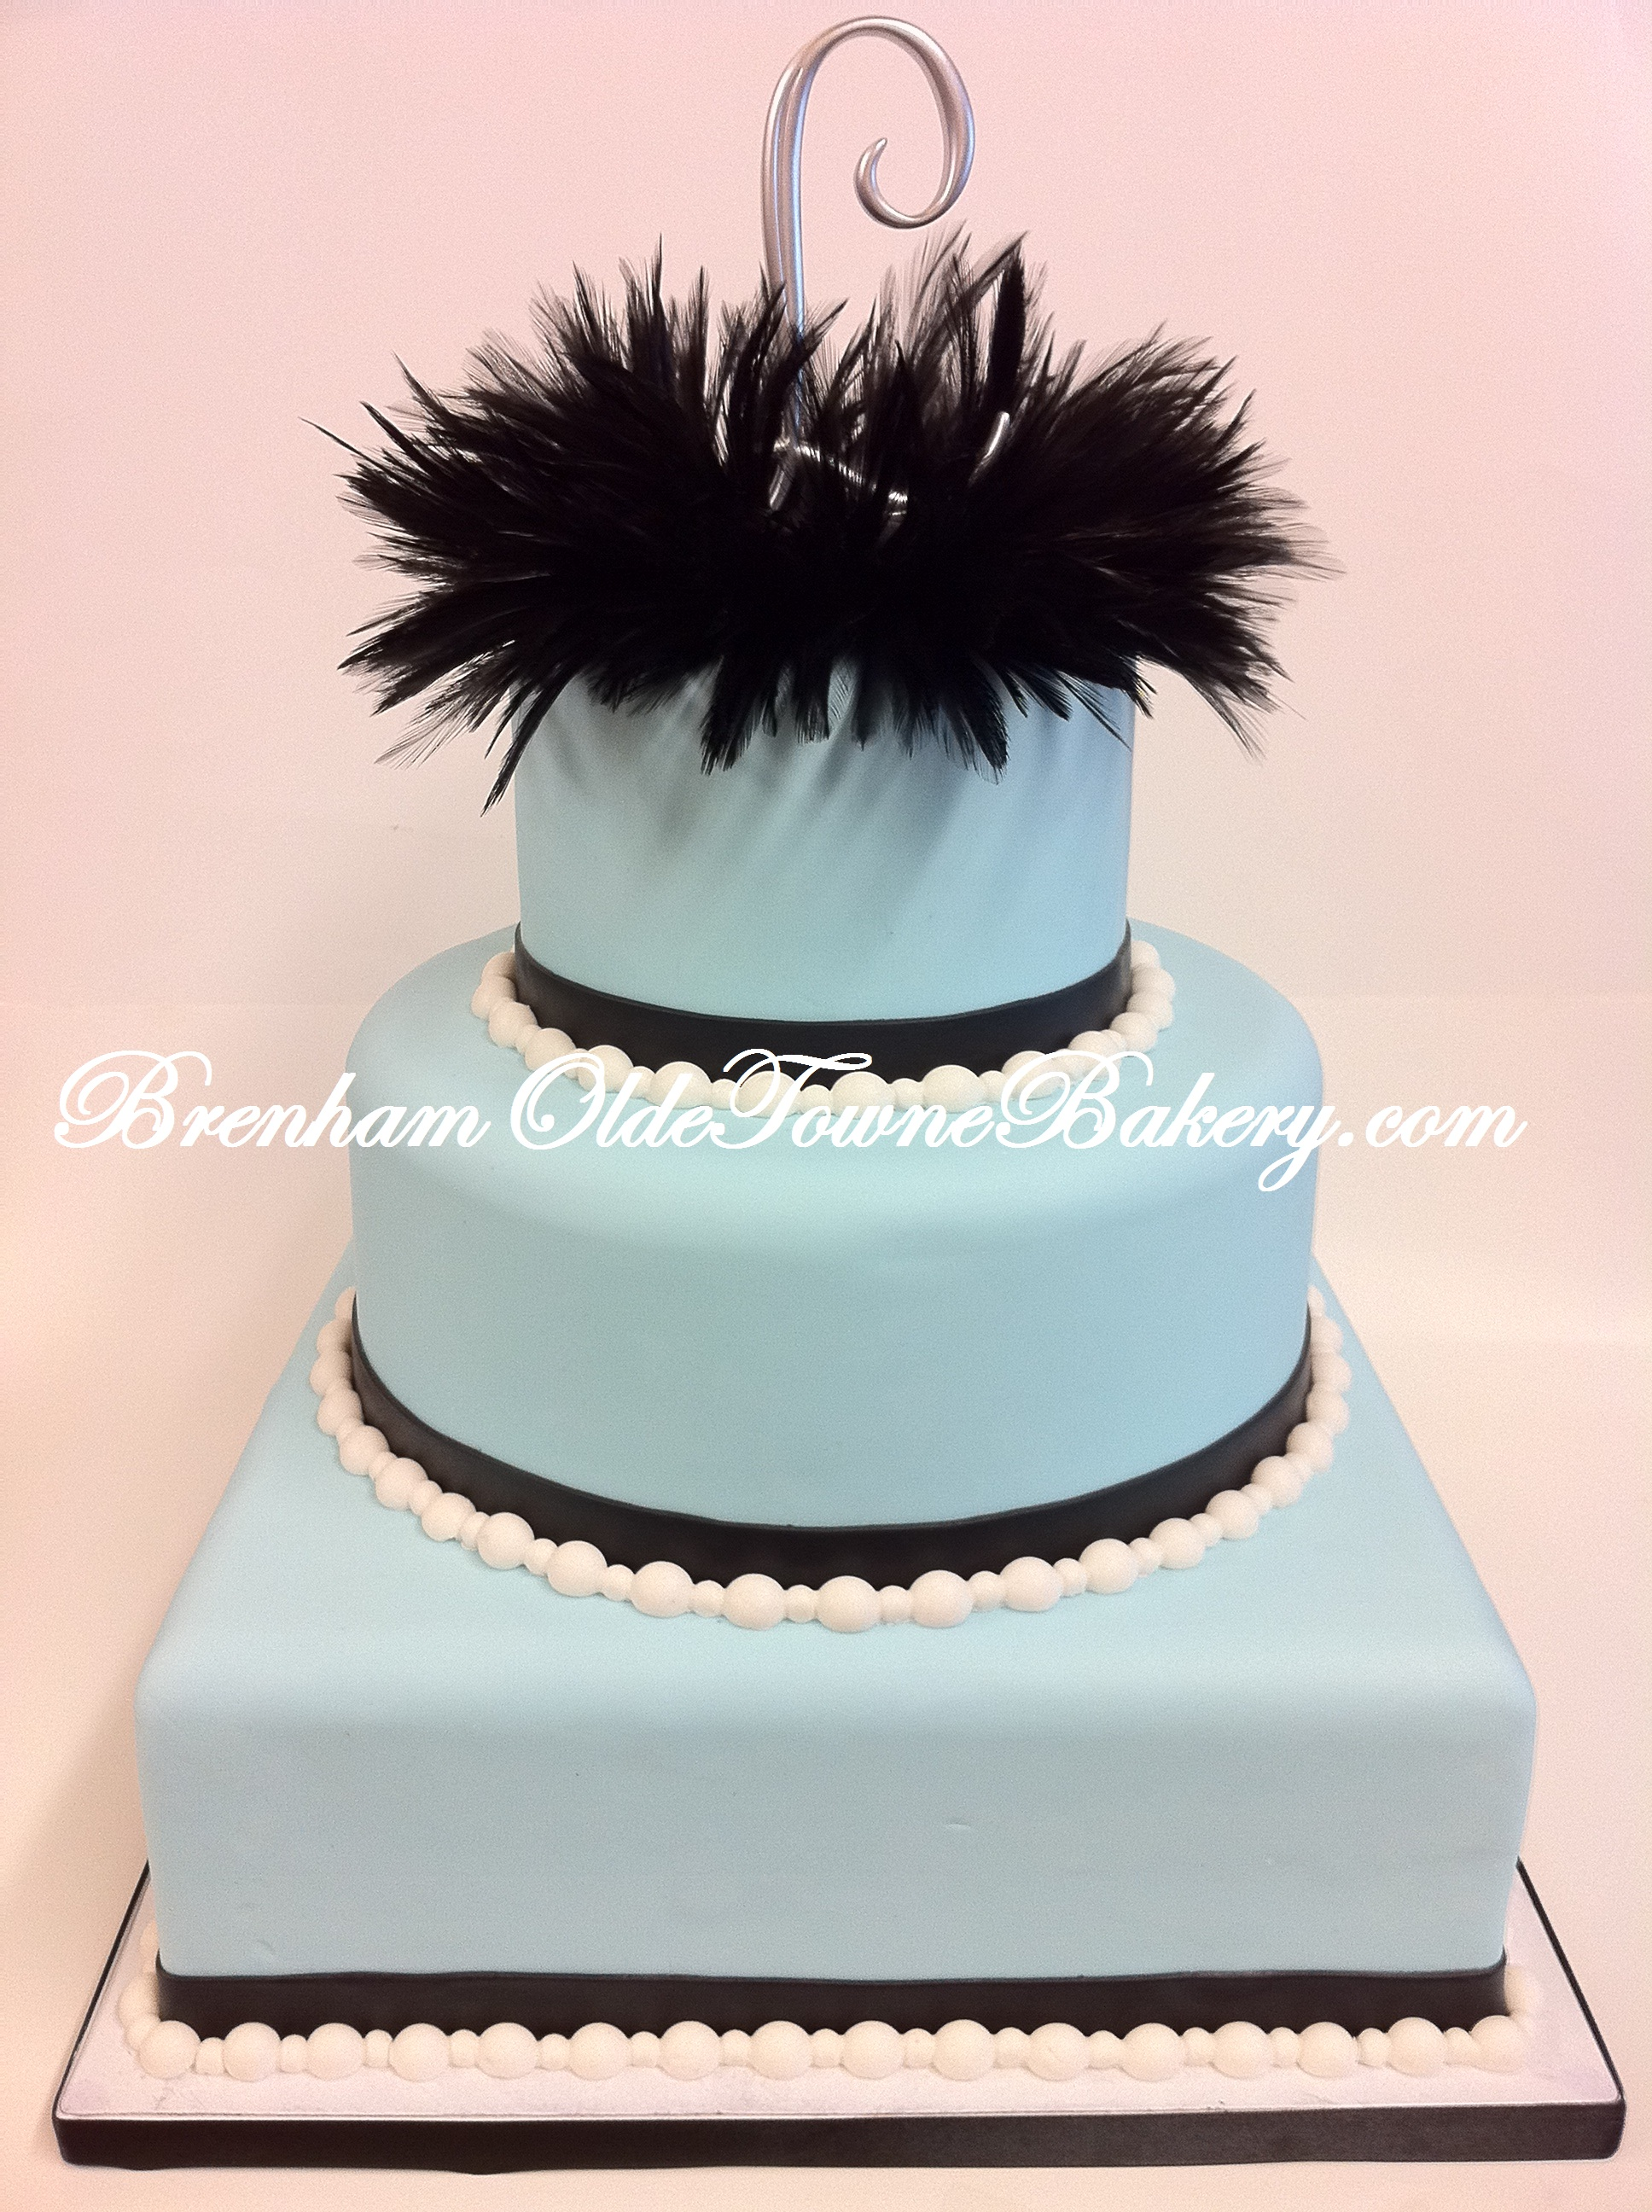 Black Feather Blue Wedding Cake Brenham Olde Towne Bakery